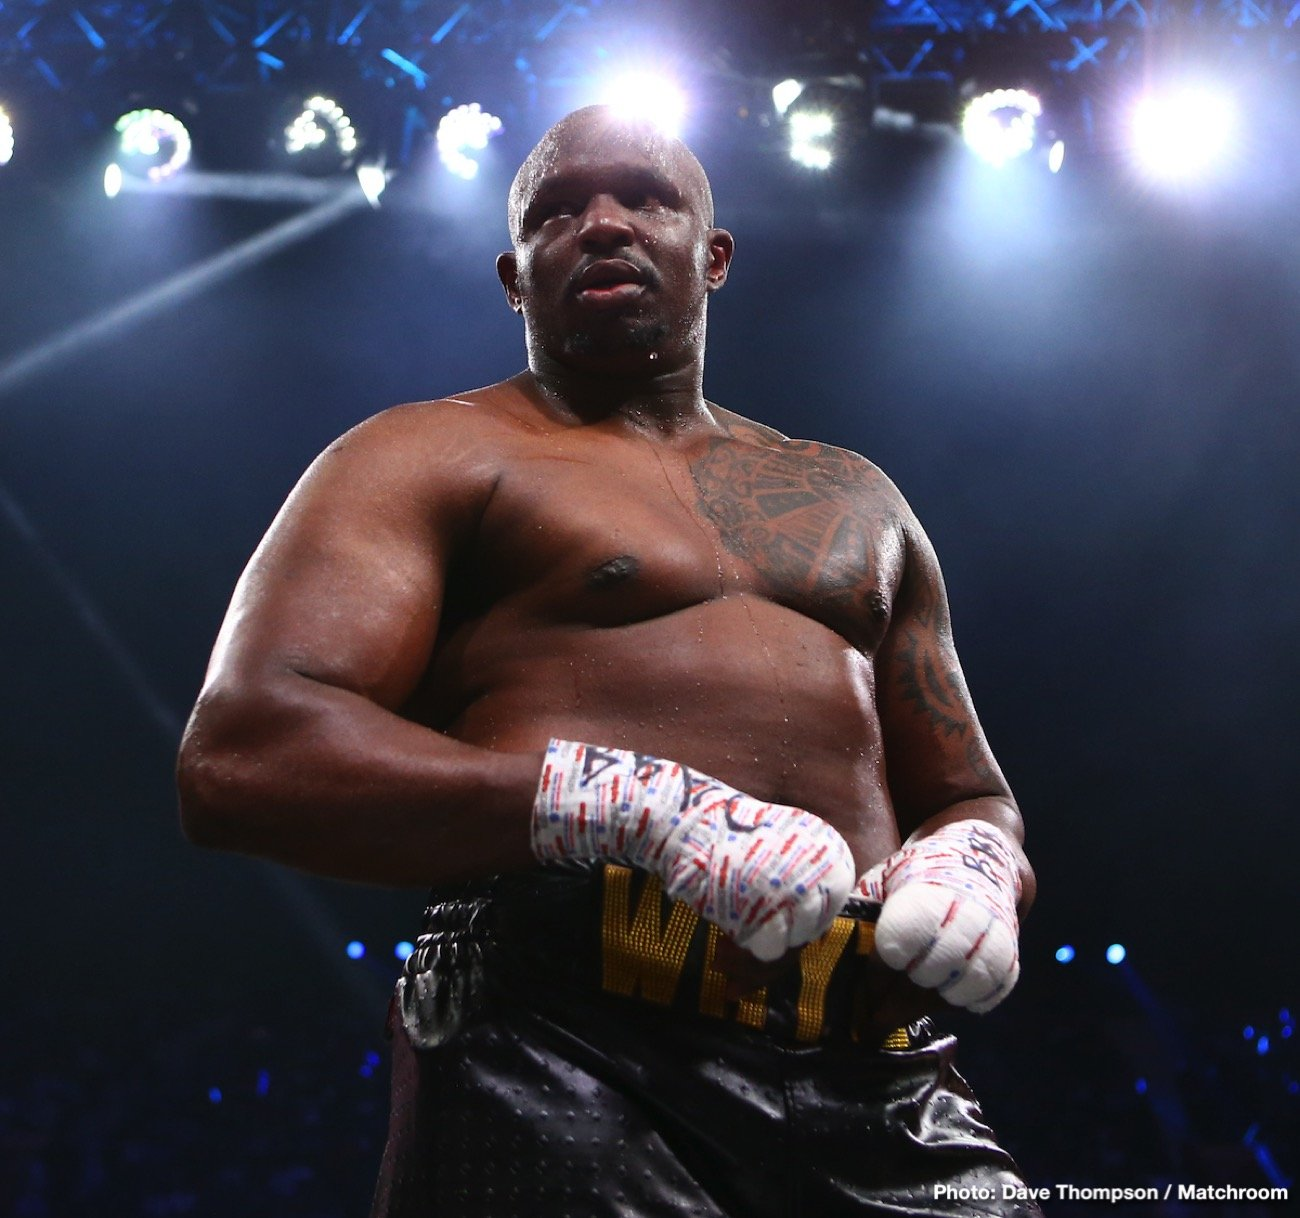 Dillian Whyte - The mandatory position, in its most basic form, is there to prevent challengers from being avoided by the champions. Like everything else in boxing though, nothing is basic. The governing bodies all have slightly different rules when it comes to mandatories, but the premise is this. The champion must defend his belt against a nominated mandatory challenger within a time frame (usually twelve months) of the challenger being designated the mandatory position. To become mandatory a fighter must fill one of the following requirements, firstly they could win a title eliminator. Secondly, they could maintain a high enough ranking for a sustained length of time, then the governing body could assign them as a mandatory challenger. Another way is to unify a weight division, then upon changing weight divisions a fighter can find themself automatically assigned as the mandatory challenger in his new division. There a probably more, but the basic rule is, if you're good enough and beat enough highly ranked fighters you will get your chance.